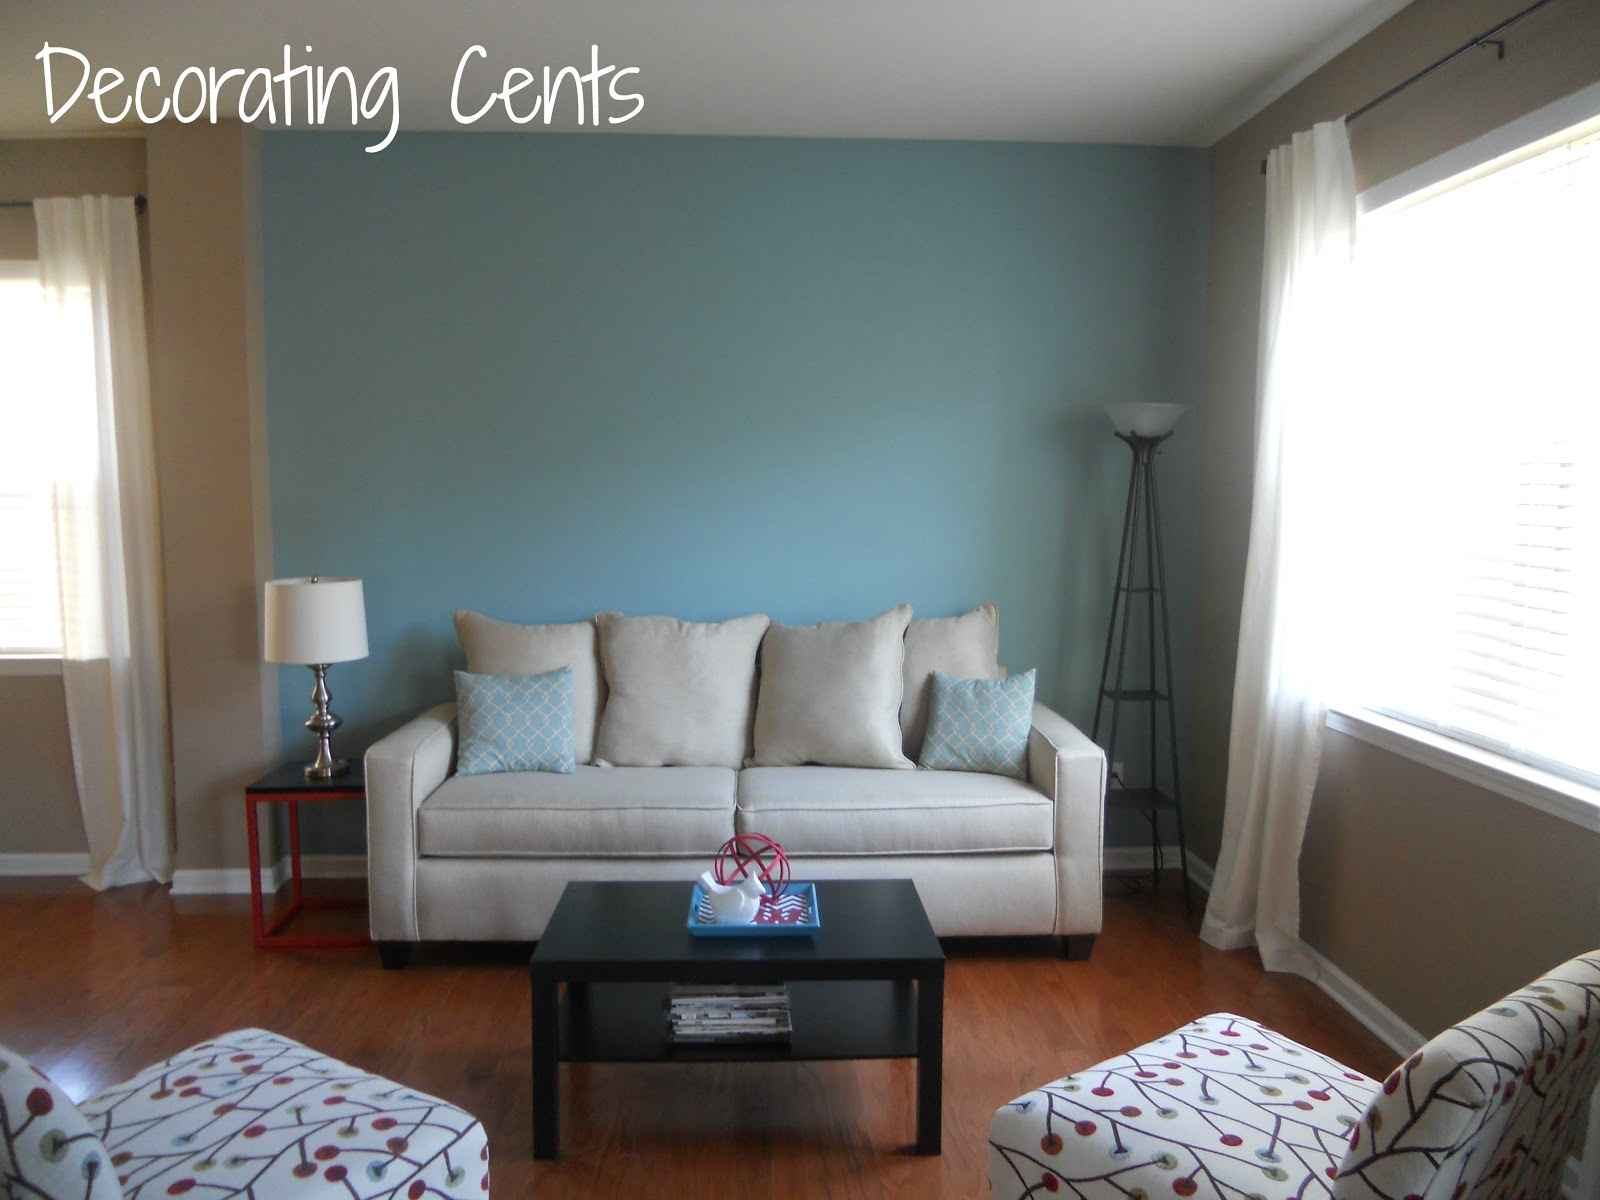 Decorating cents changing the background - Blue walls living room ...